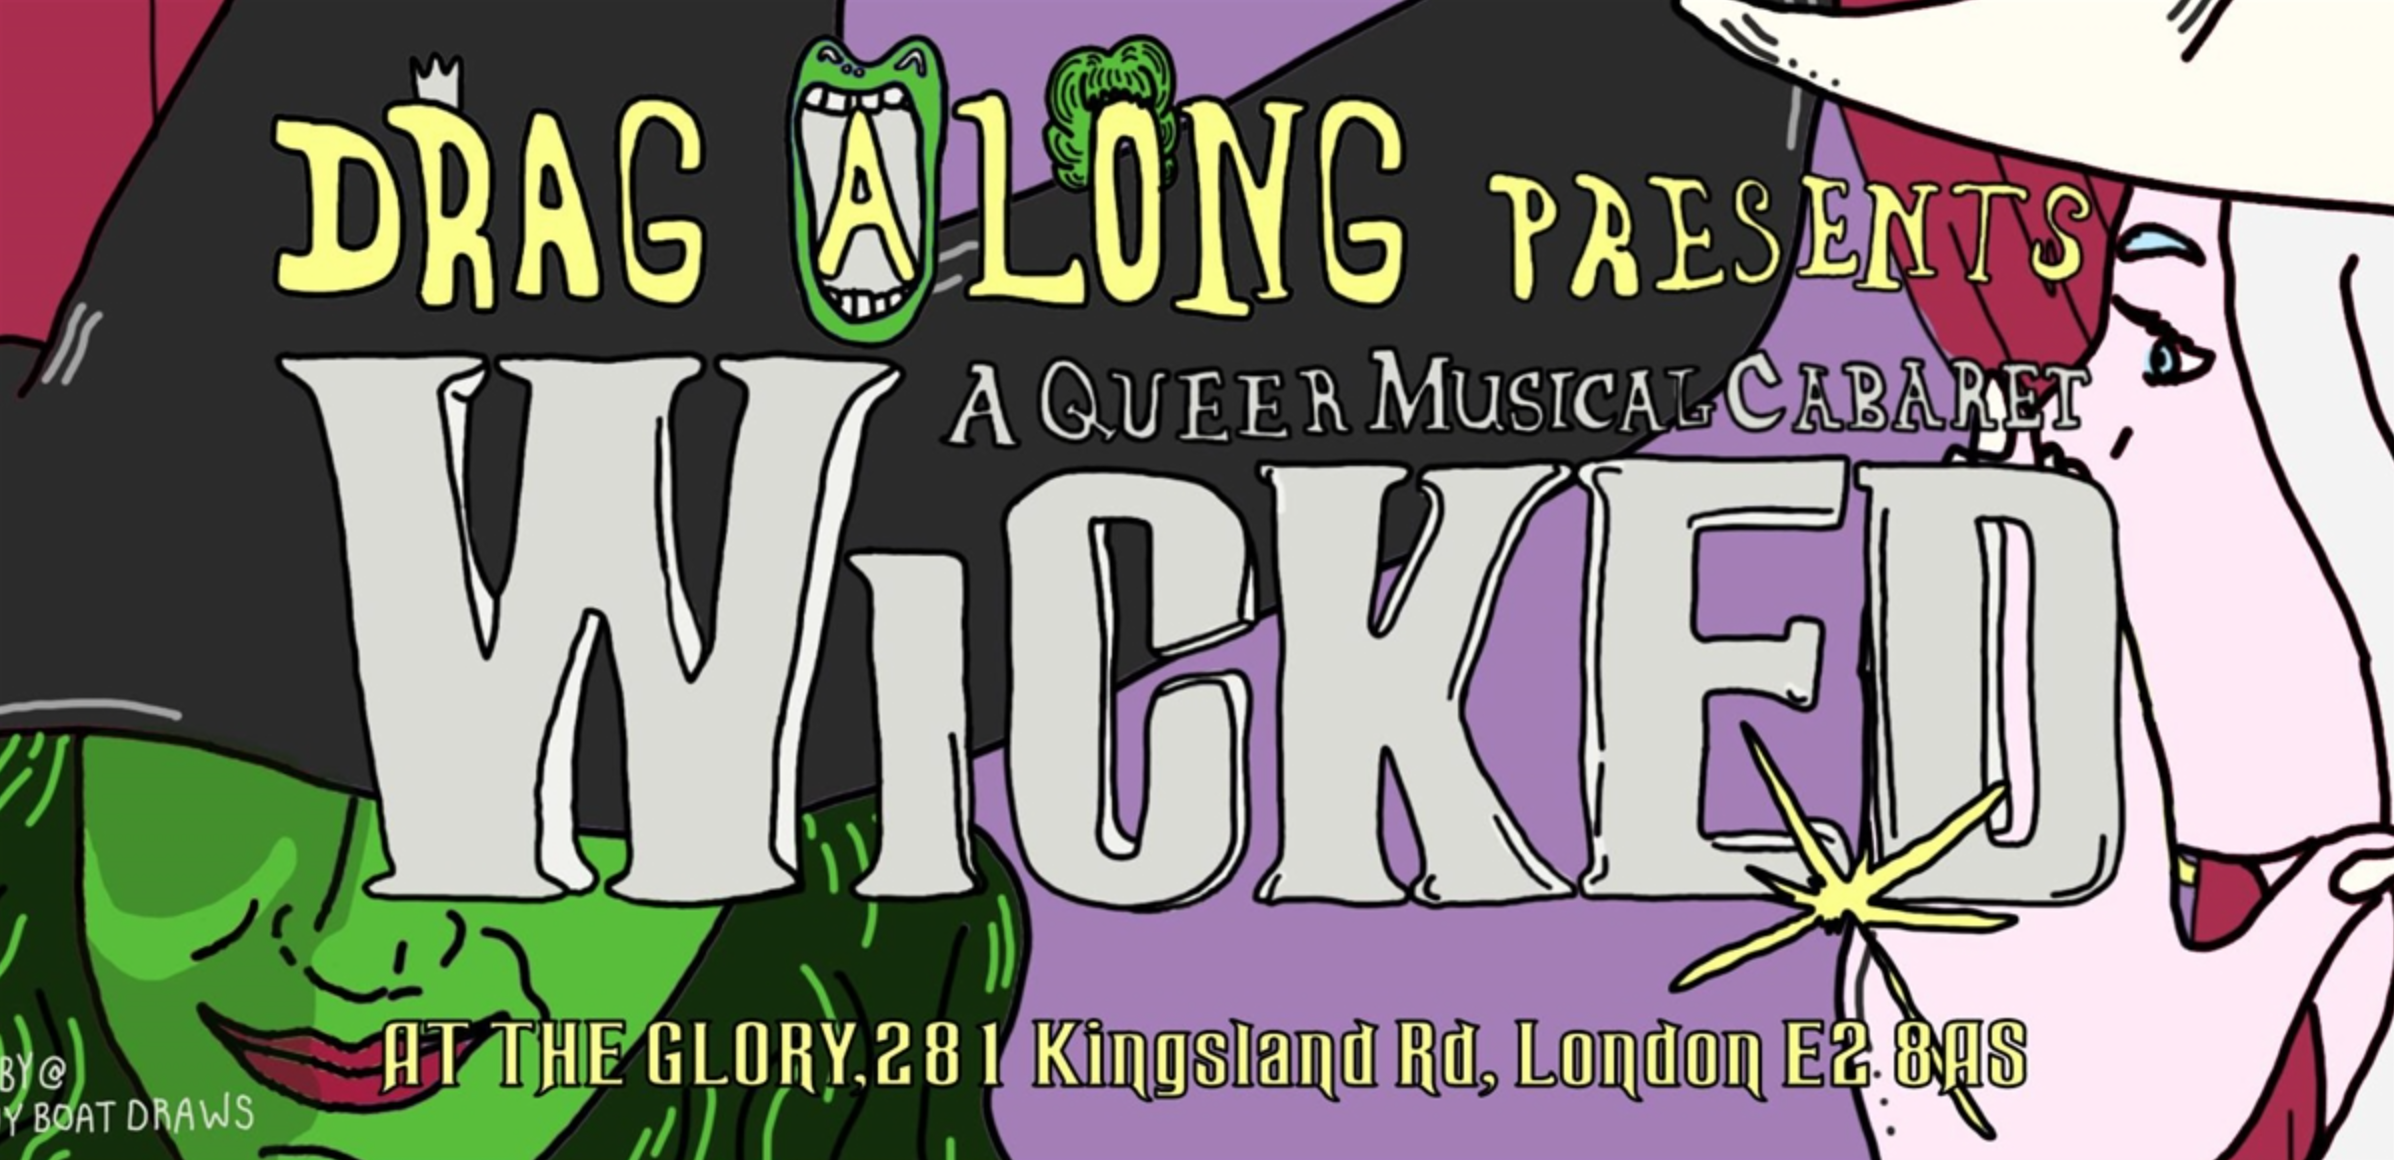 Drag-A-Long presents Wicked